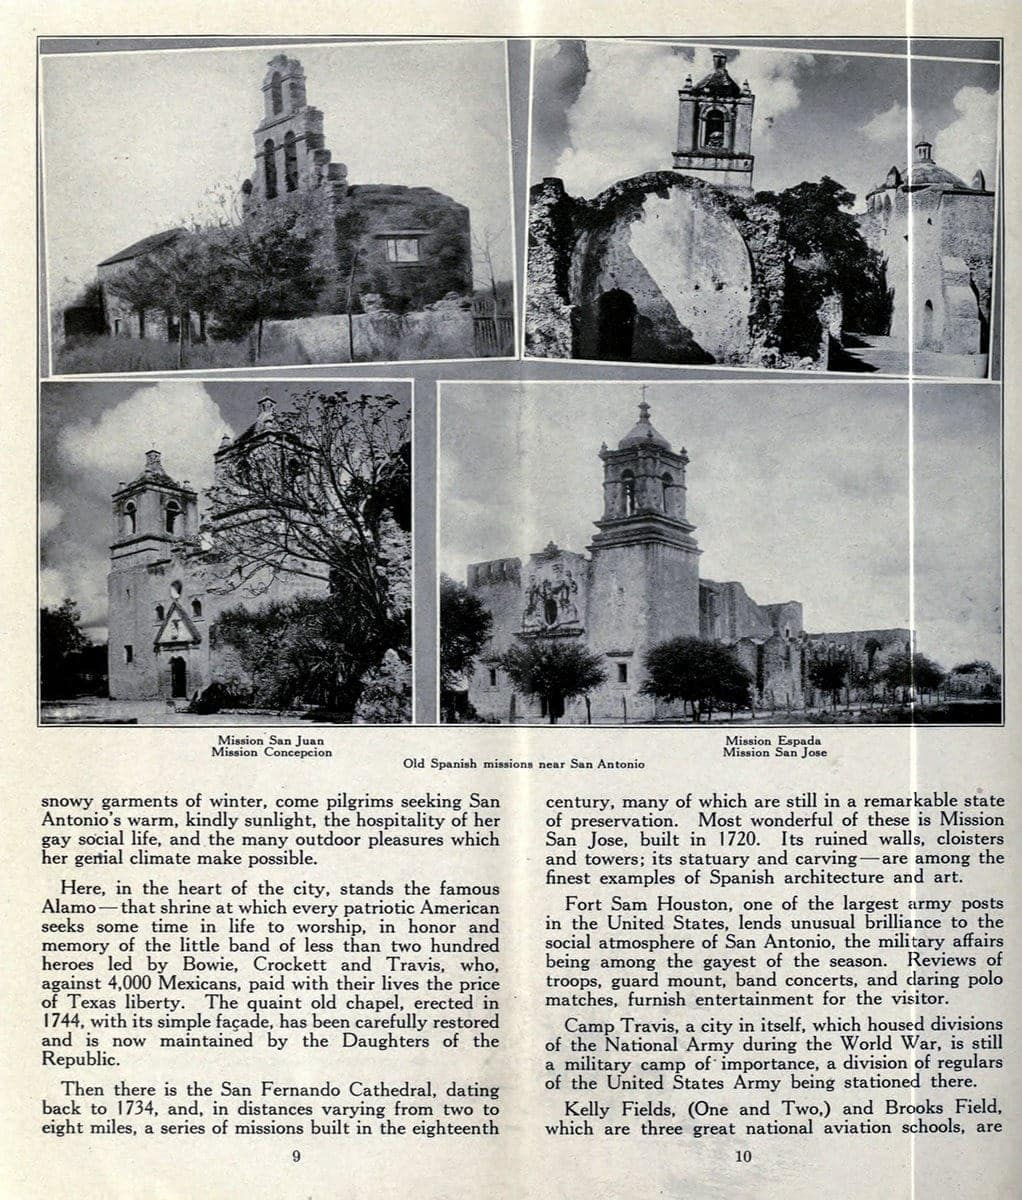 Old Spanish Missions near San Antonio